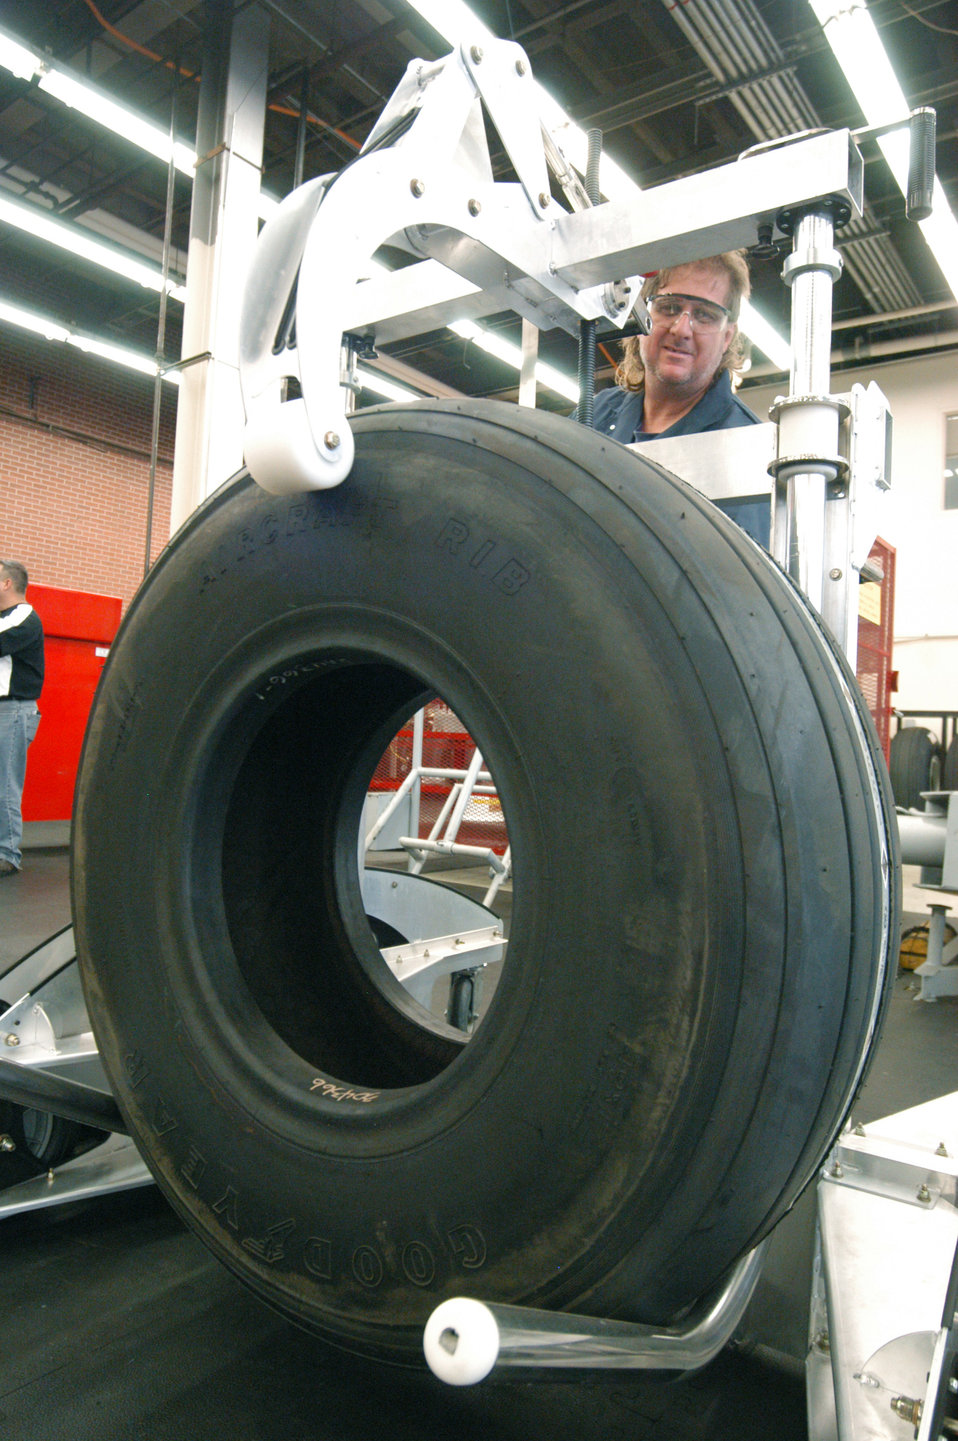 Ergonomic robot vehicle helps workers inspect tires safely